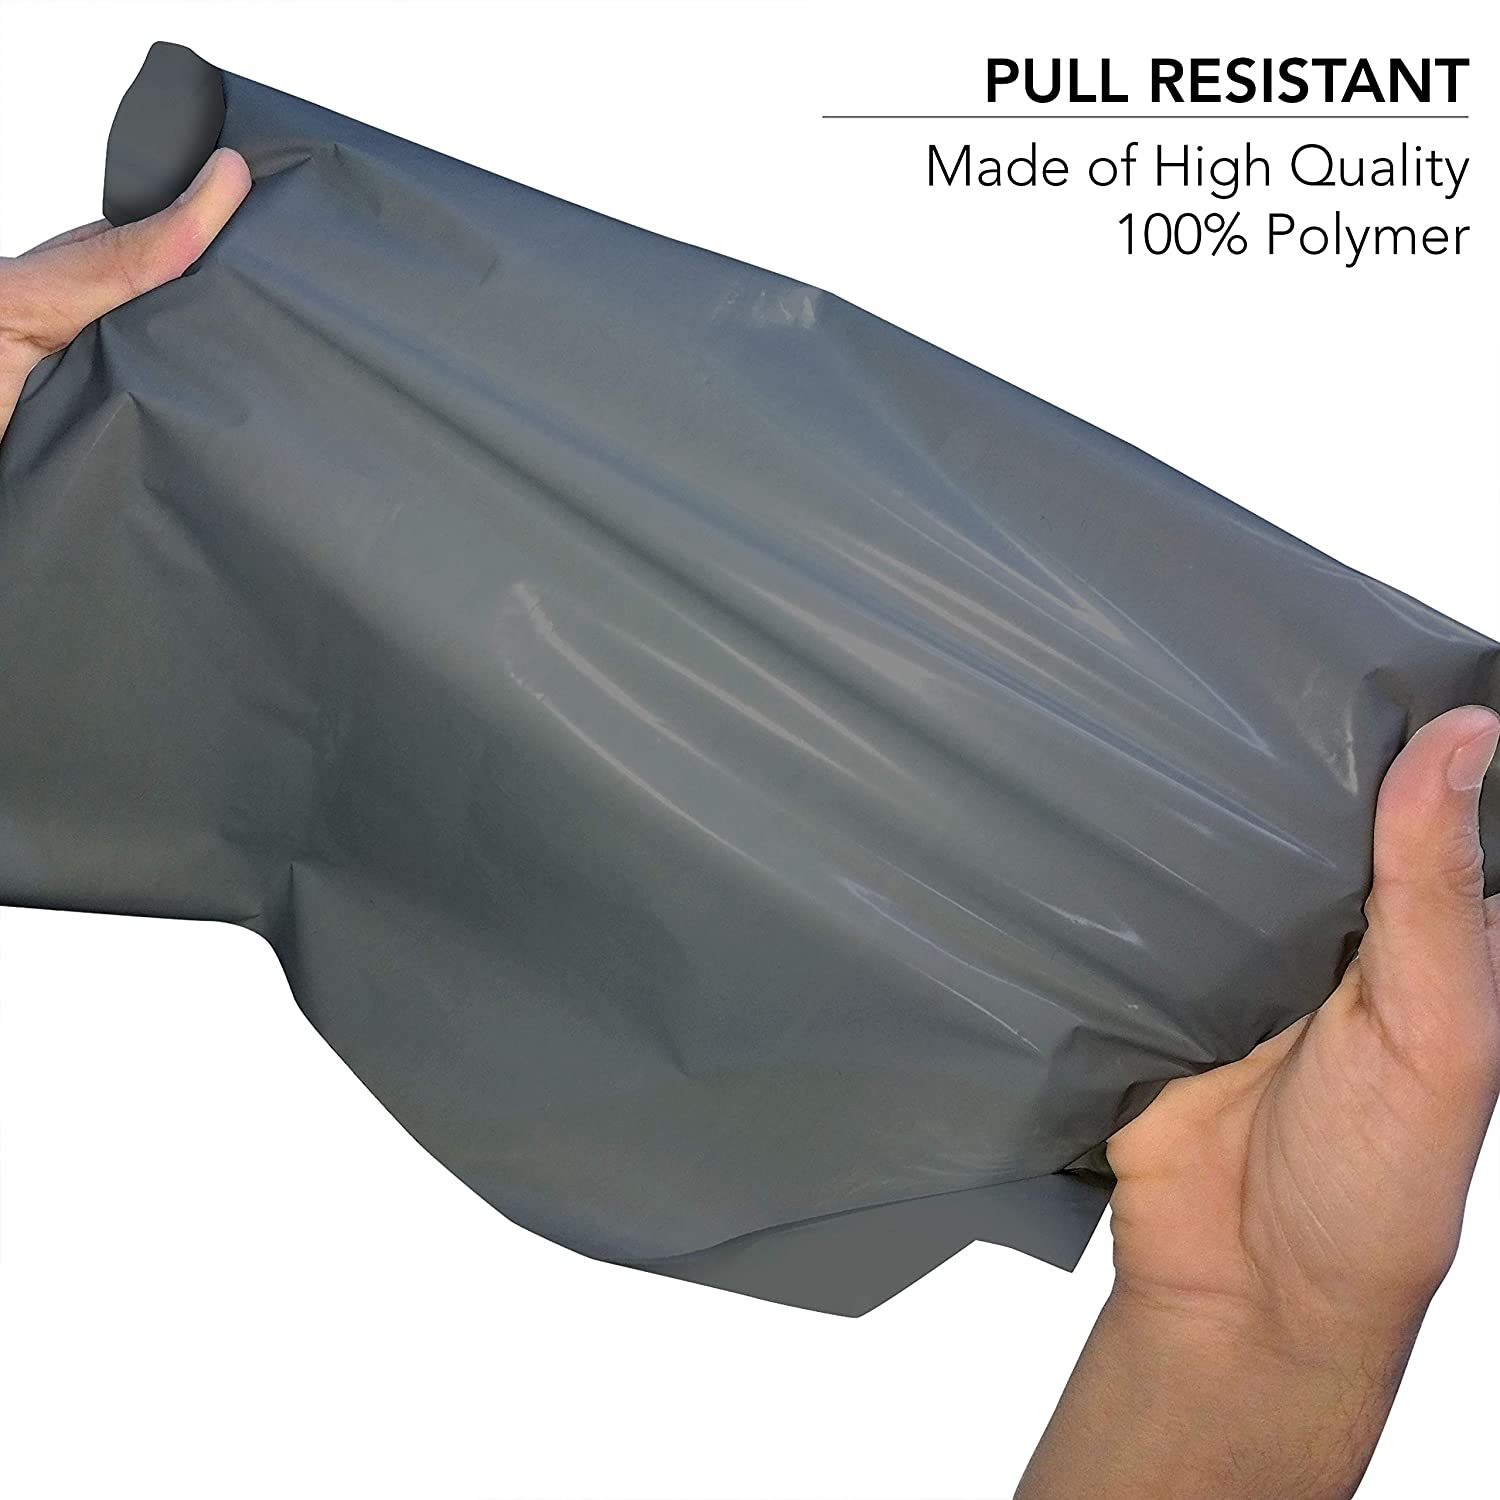 100 Mixed Grey Mailing Poly Postal Self Seal Bags 4 Sizes 25 from Each iSOUL Small to Large Mailing Bags Postage Packaging Assorted Mailers Posting Shipping Post Parcel Package Bags